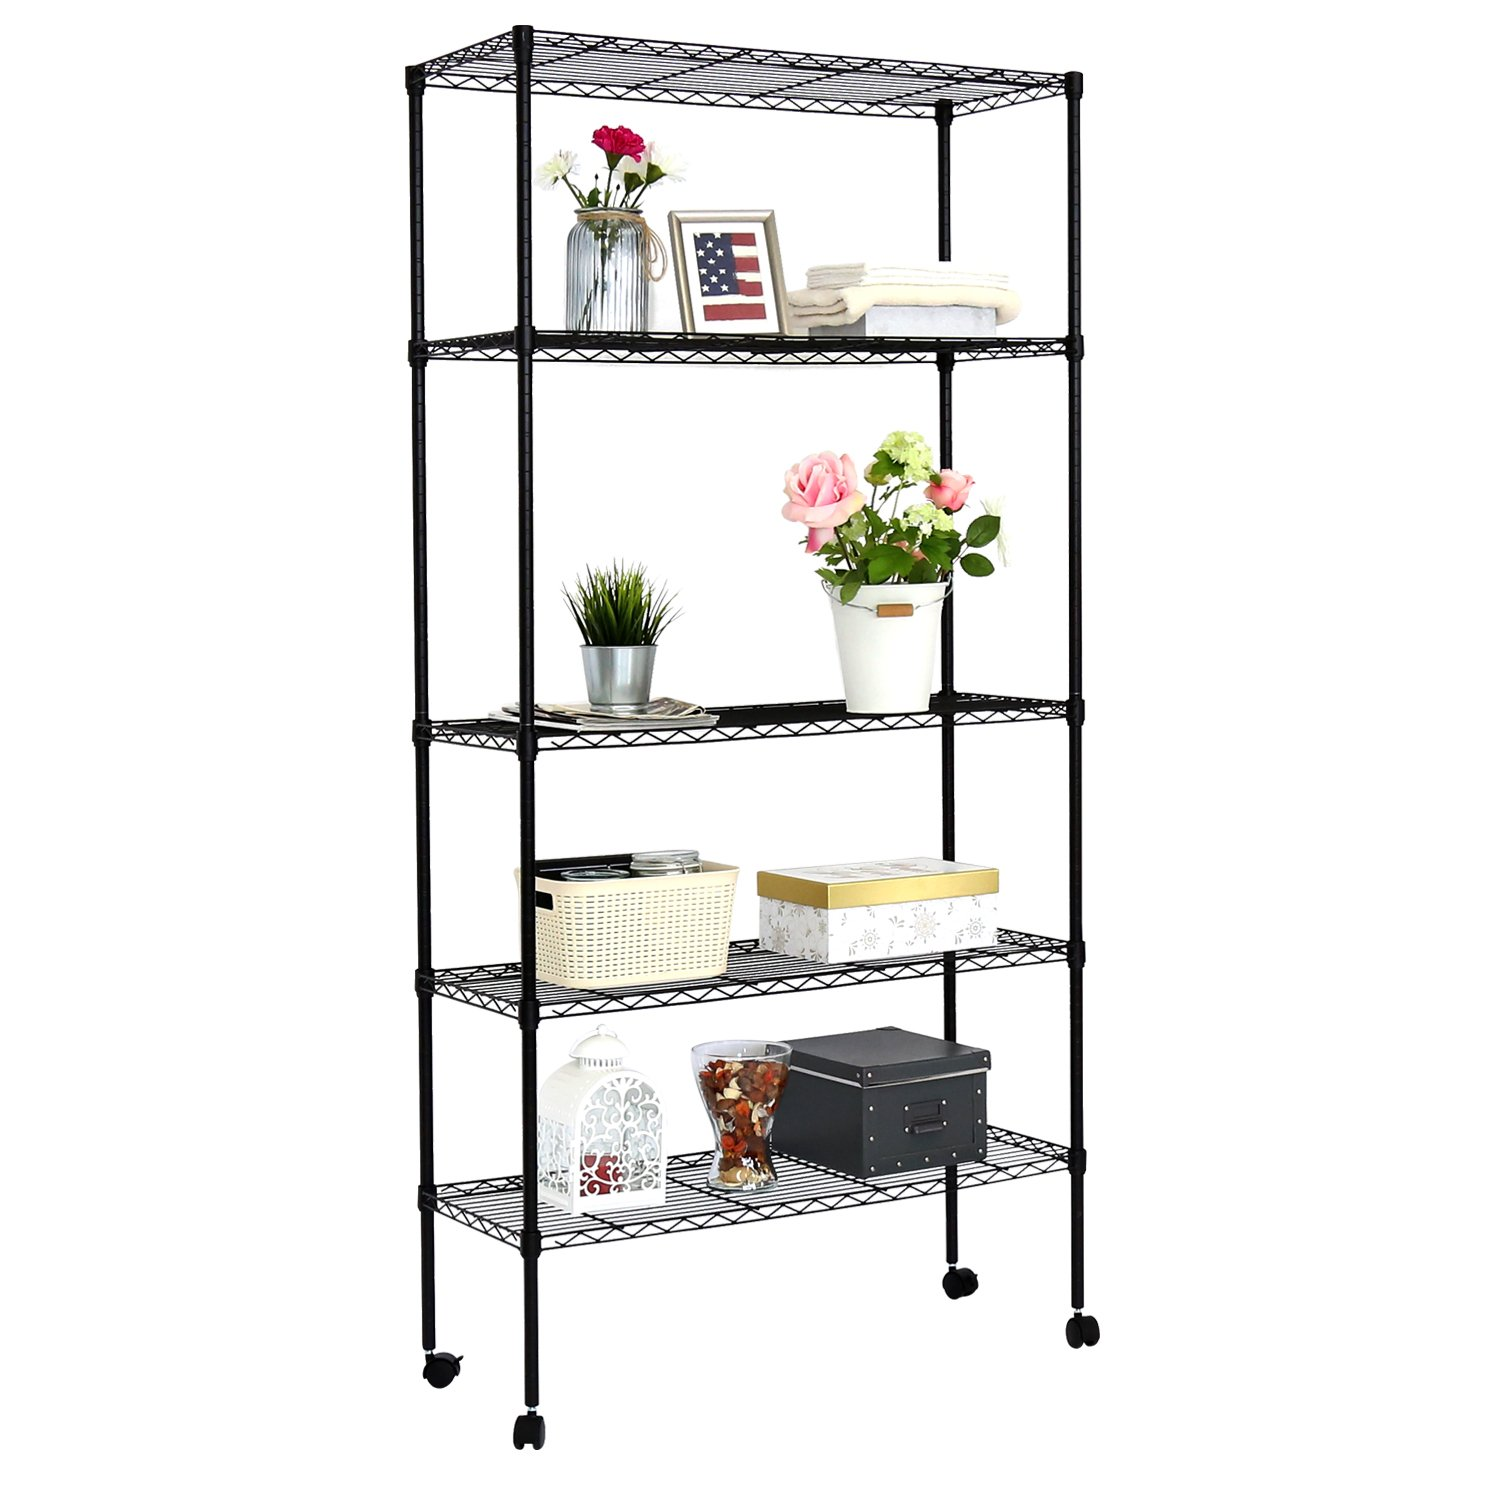 Kinbor 5-Layer Wire Metal Shelf Adjustable Shelving Storage Rack w/Wheels (Black)